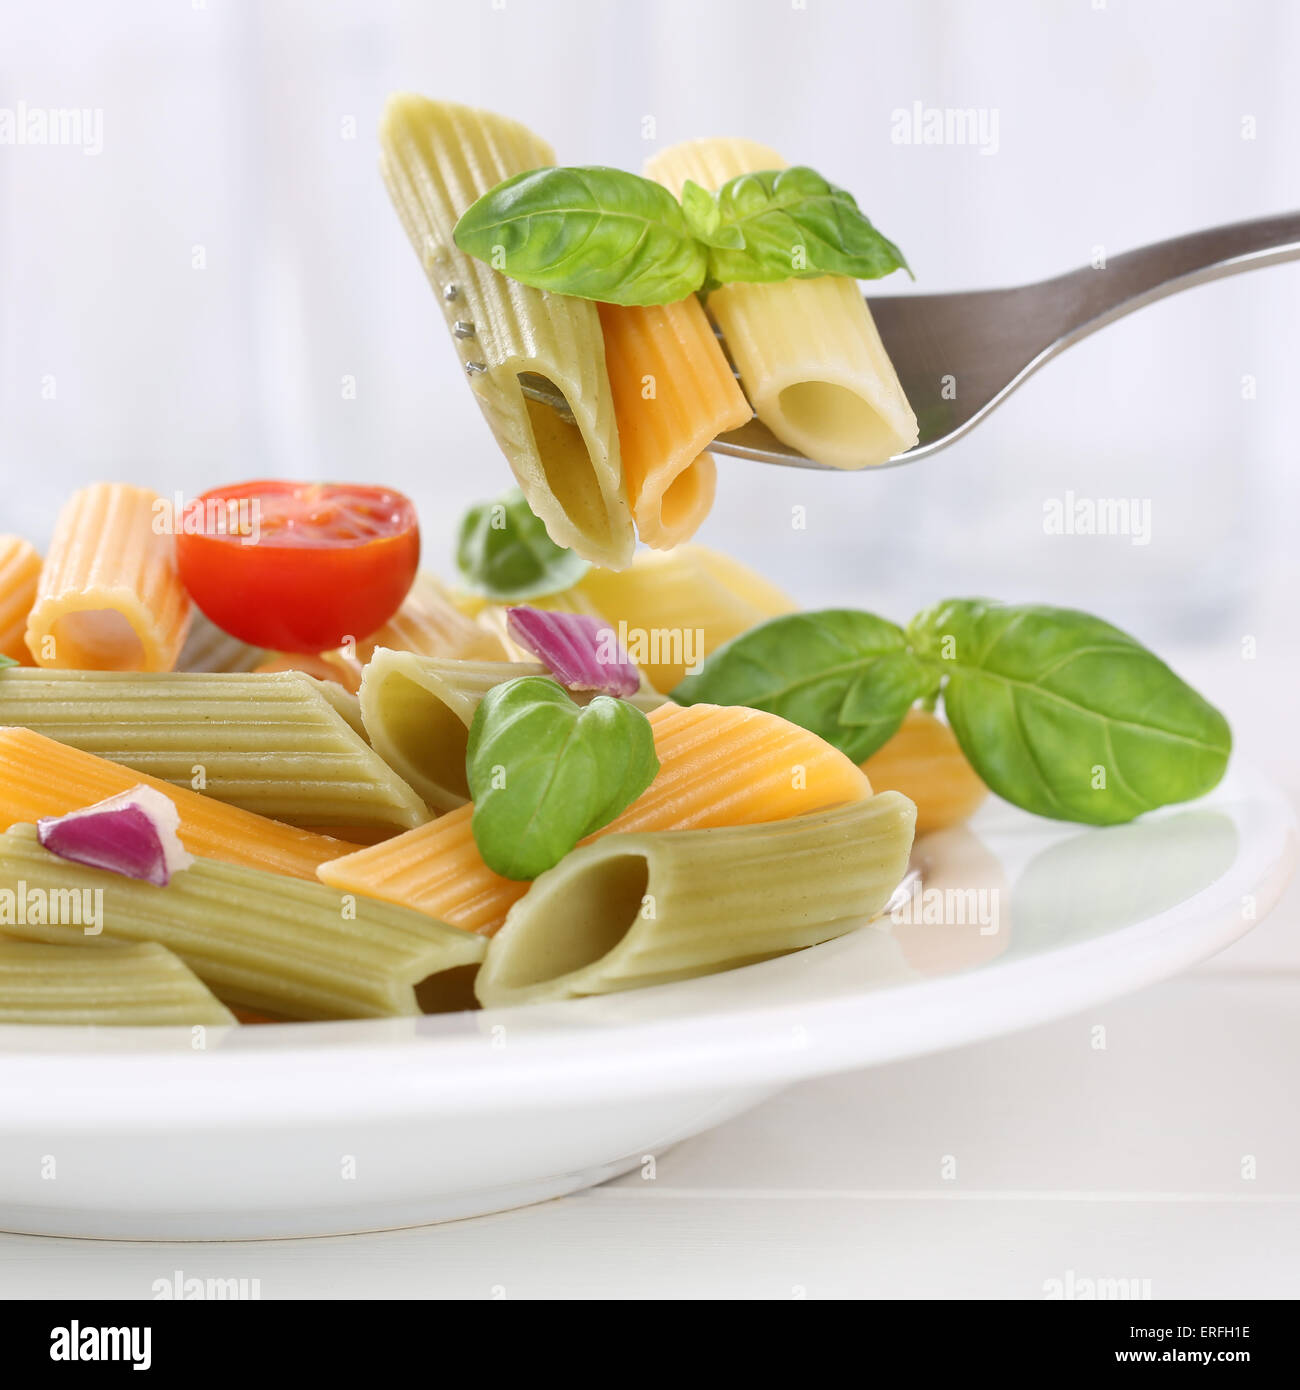 Italian cuisine eating colorful Penne Rigate noodles pasta meal with fork - Stock Image